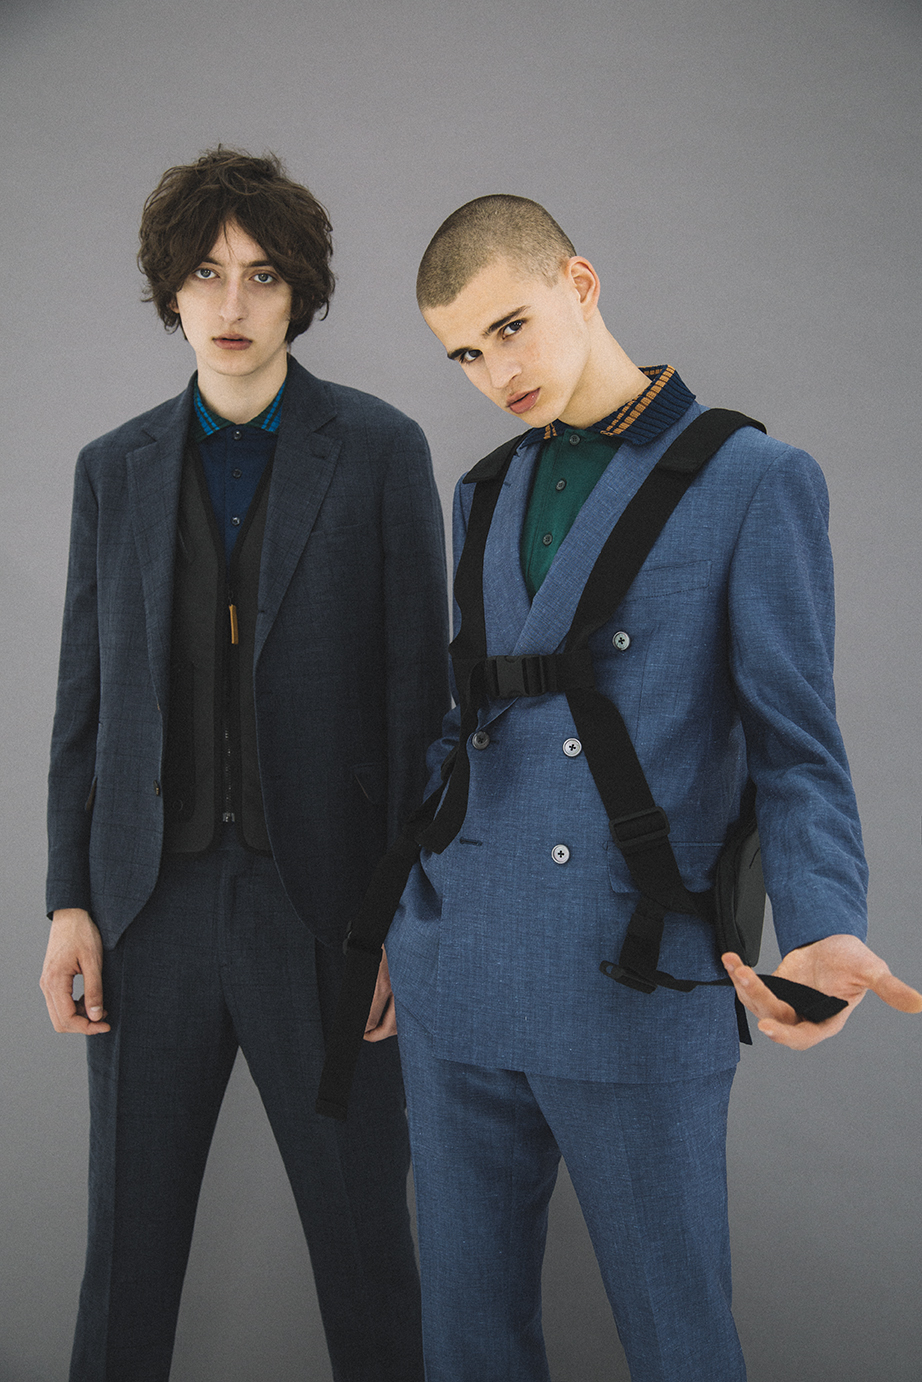 FS3A4803-cardini-alessandrocardini-dior-homme-IL-il-sole-24-ore-stylist-editorial-fashion-editors-vogue-moda-fashion-photo-gucci-armani-balenciaga-vuitto